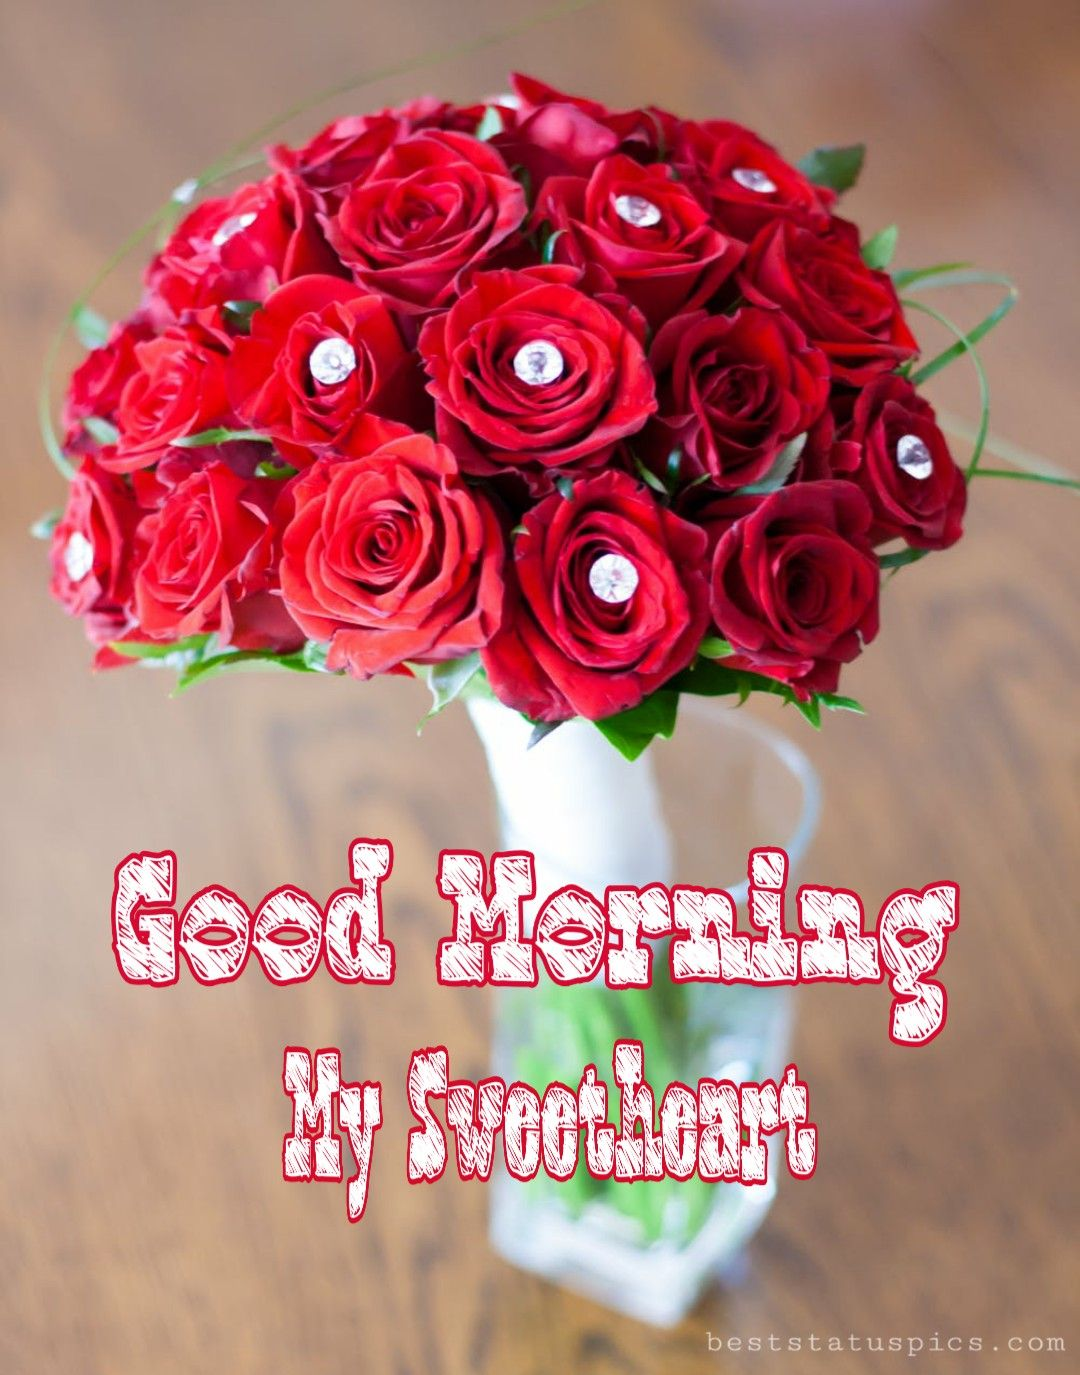 Good Morning Romantic Rose Flower Photos In 2020 Good Morning Romantic Rose Flower Photos Rose Flower